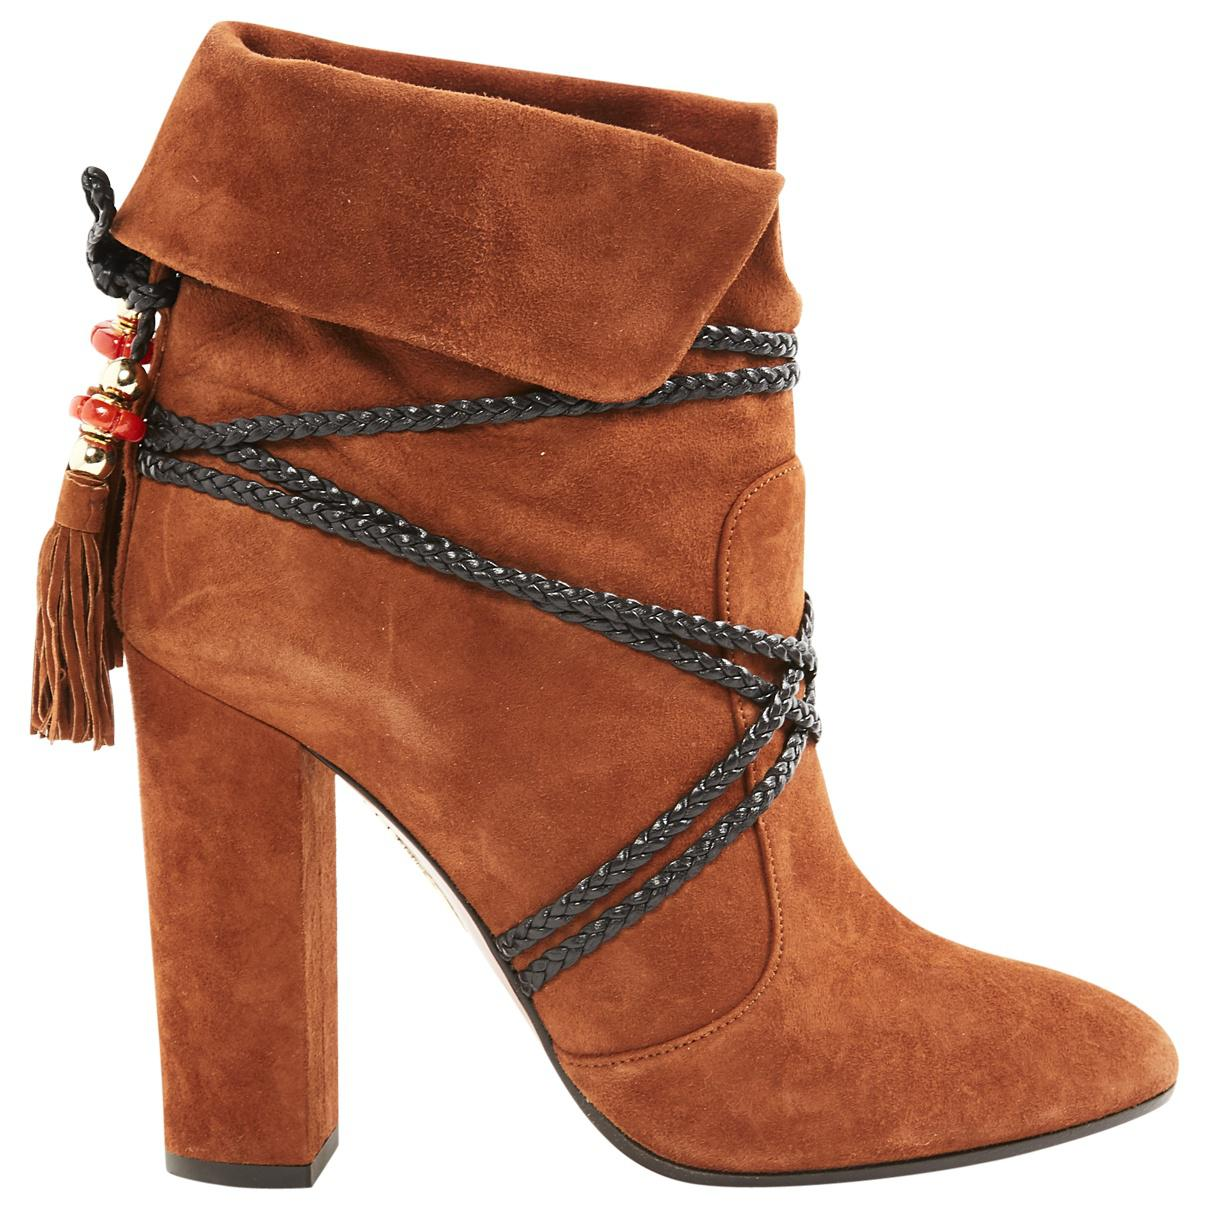 Pre-owned - Ankle boots Aquazzura yZpAemy